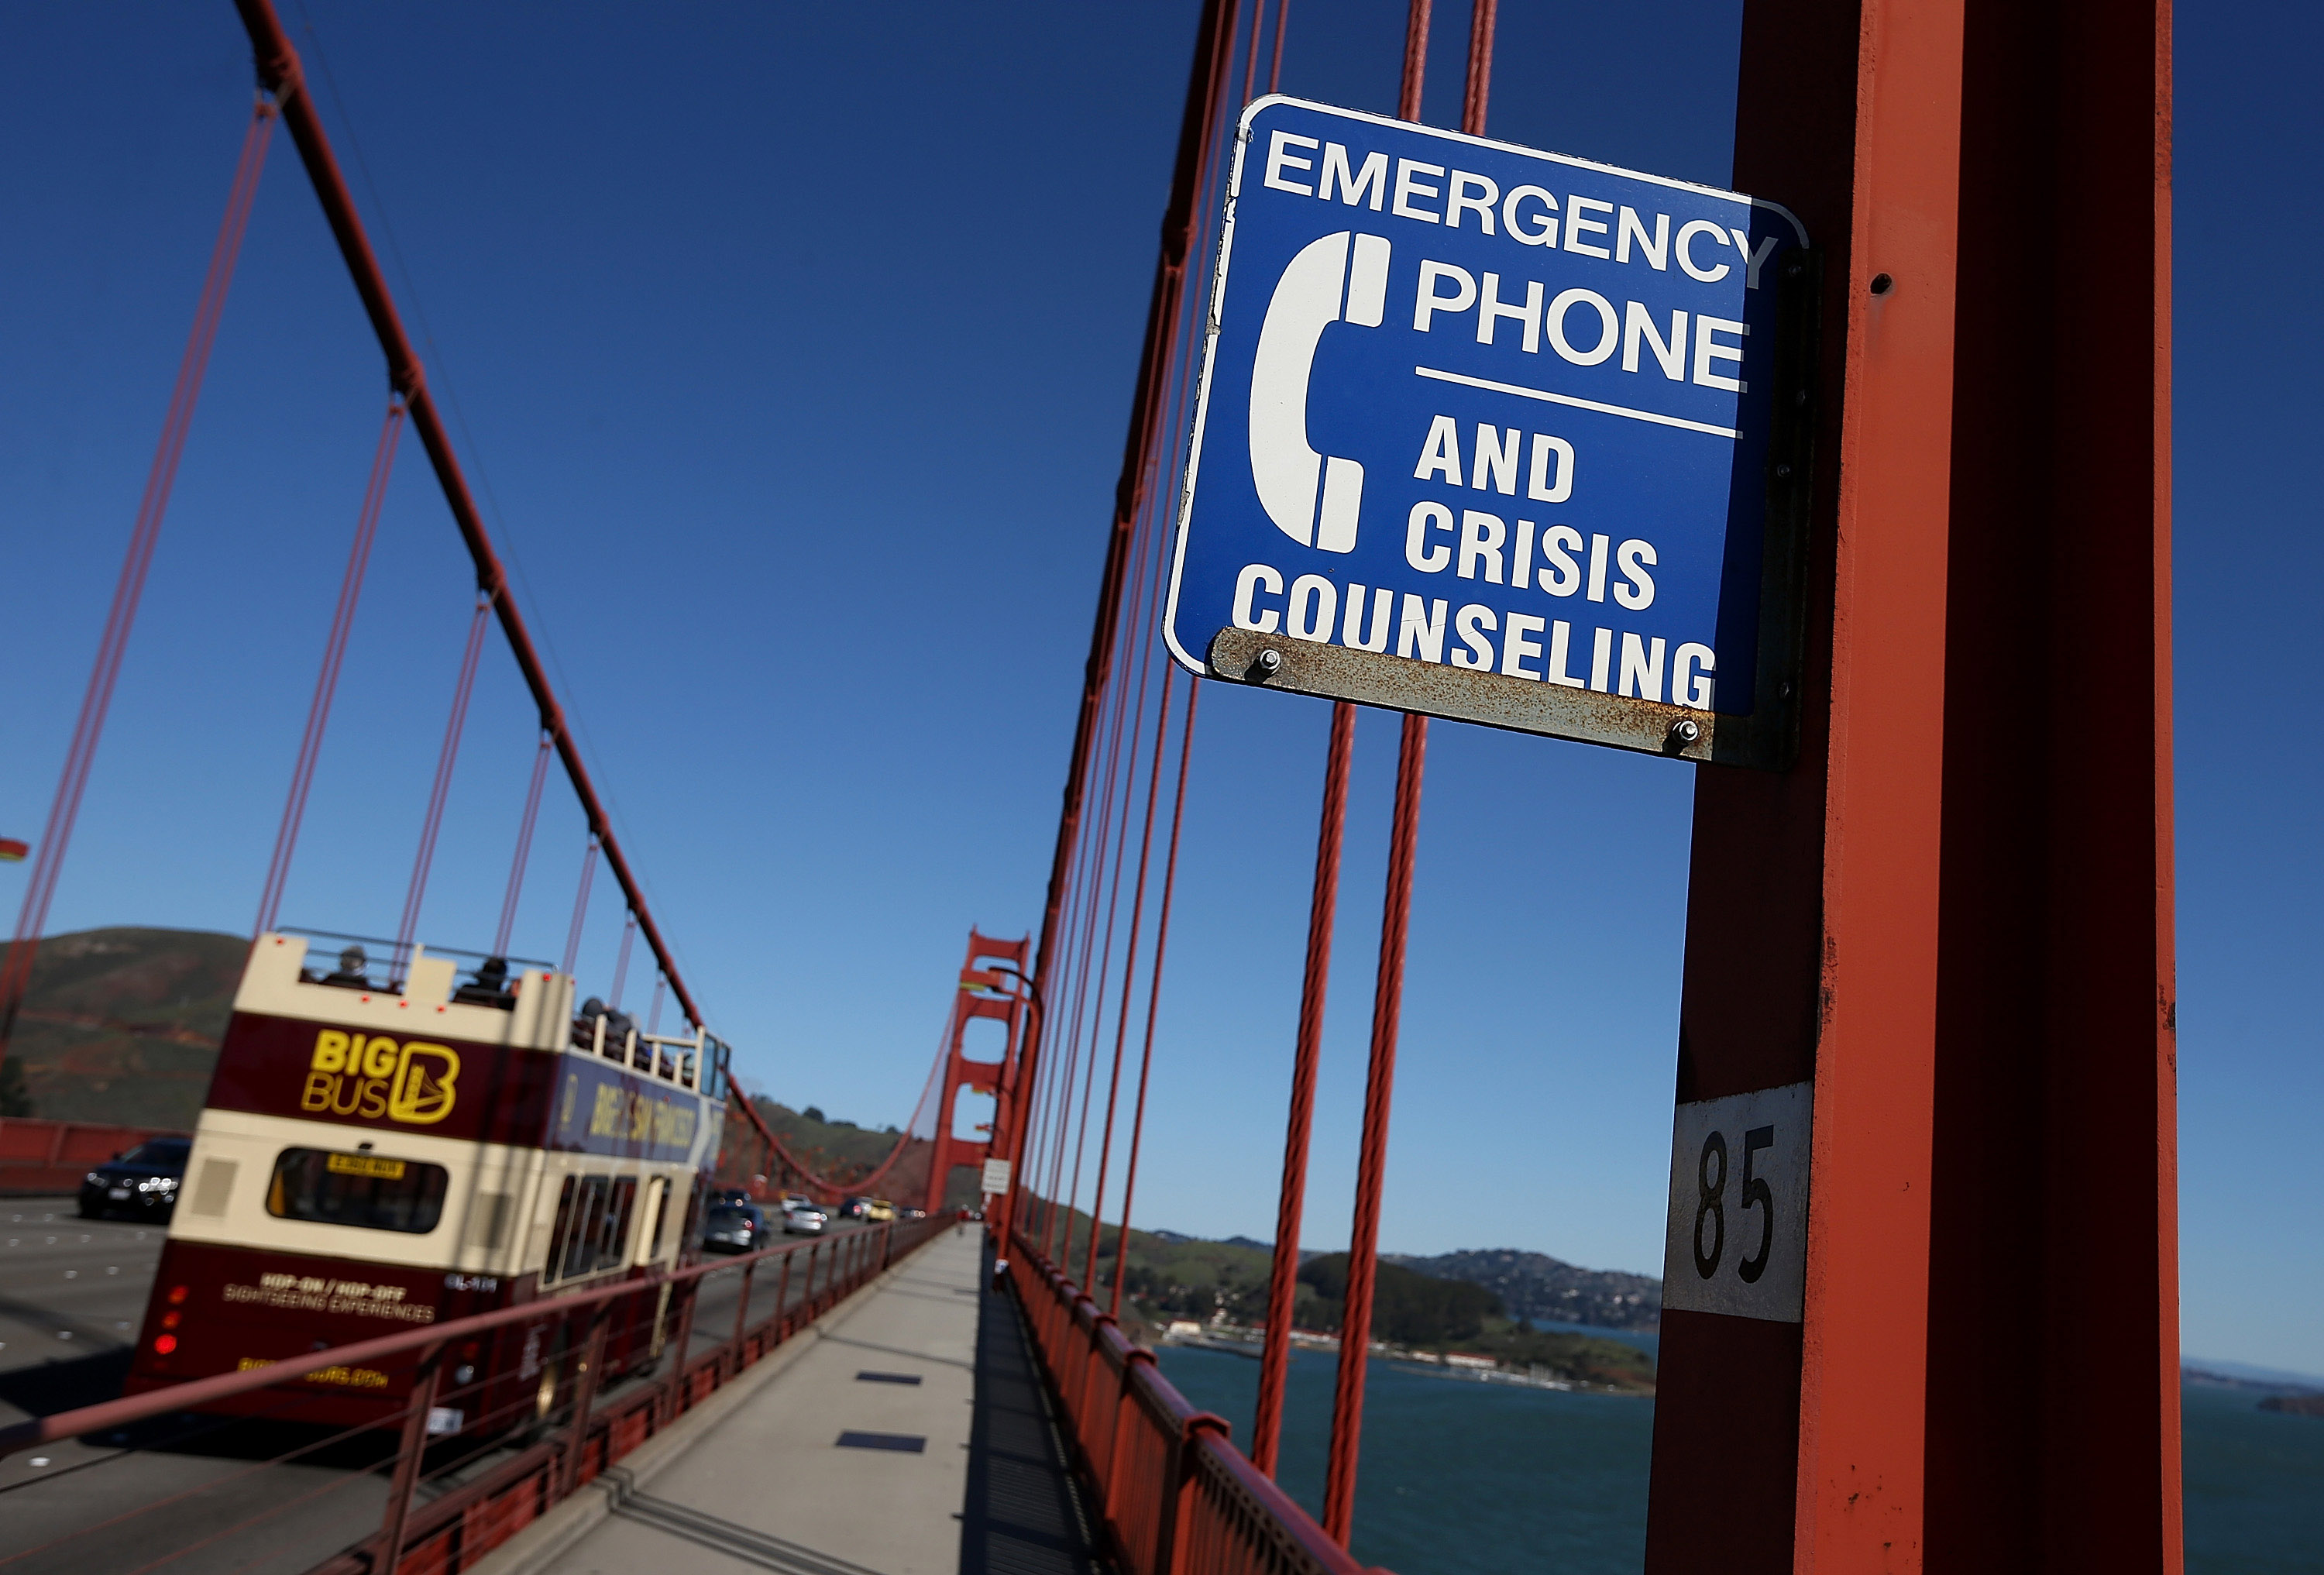 A sign alerting people to use an emergency crisis counseling phone if in distress.